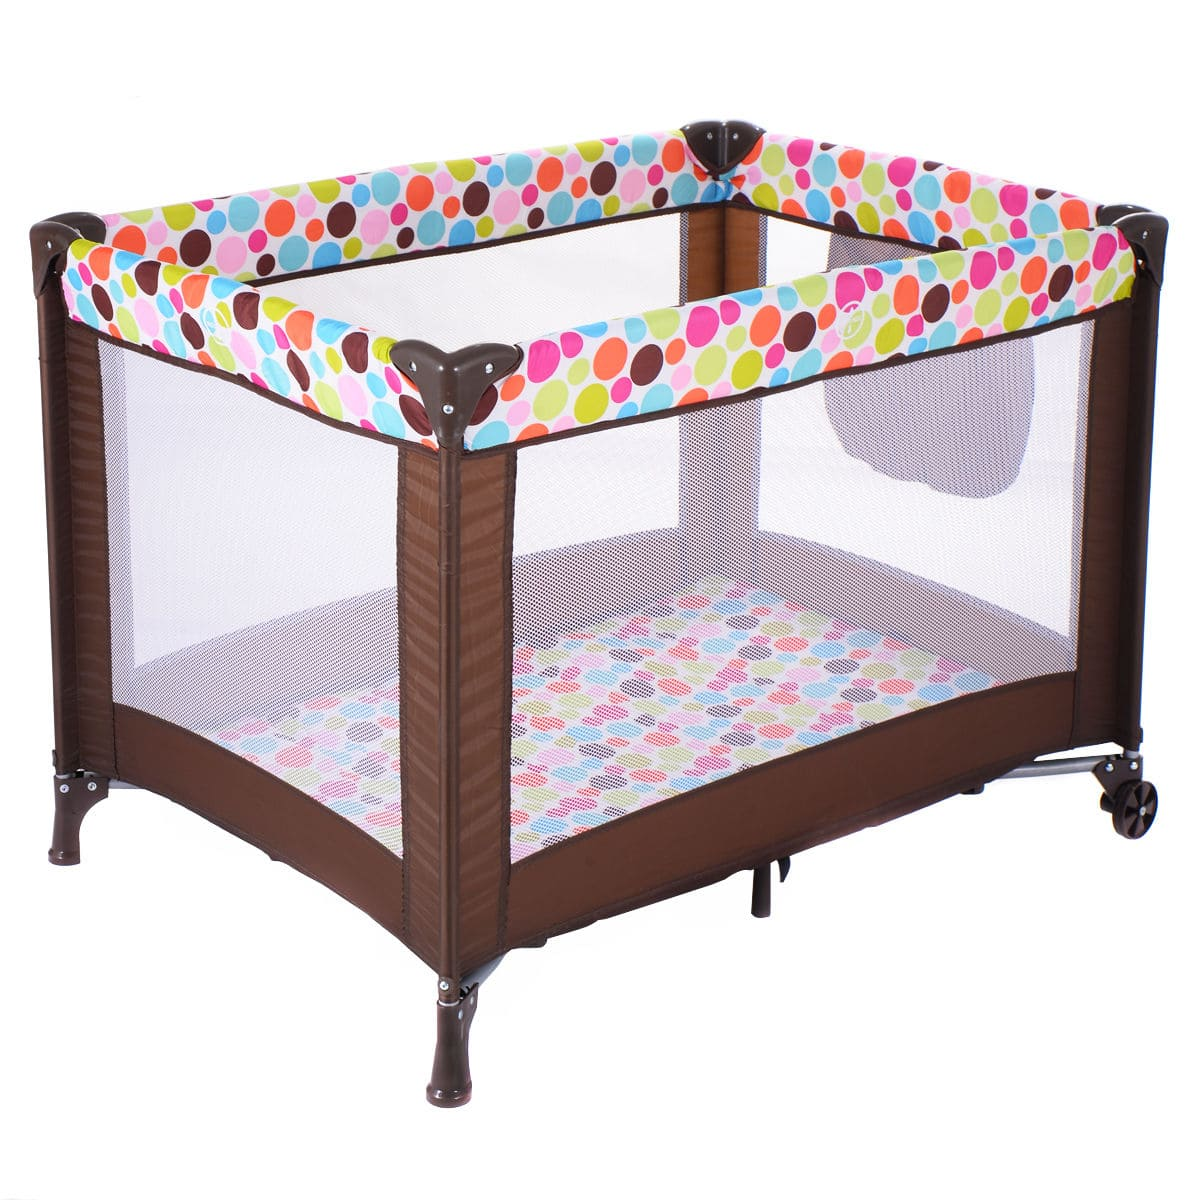 Baby Bassinet Travel Portable Bed Playpen - FREE SHIPPING